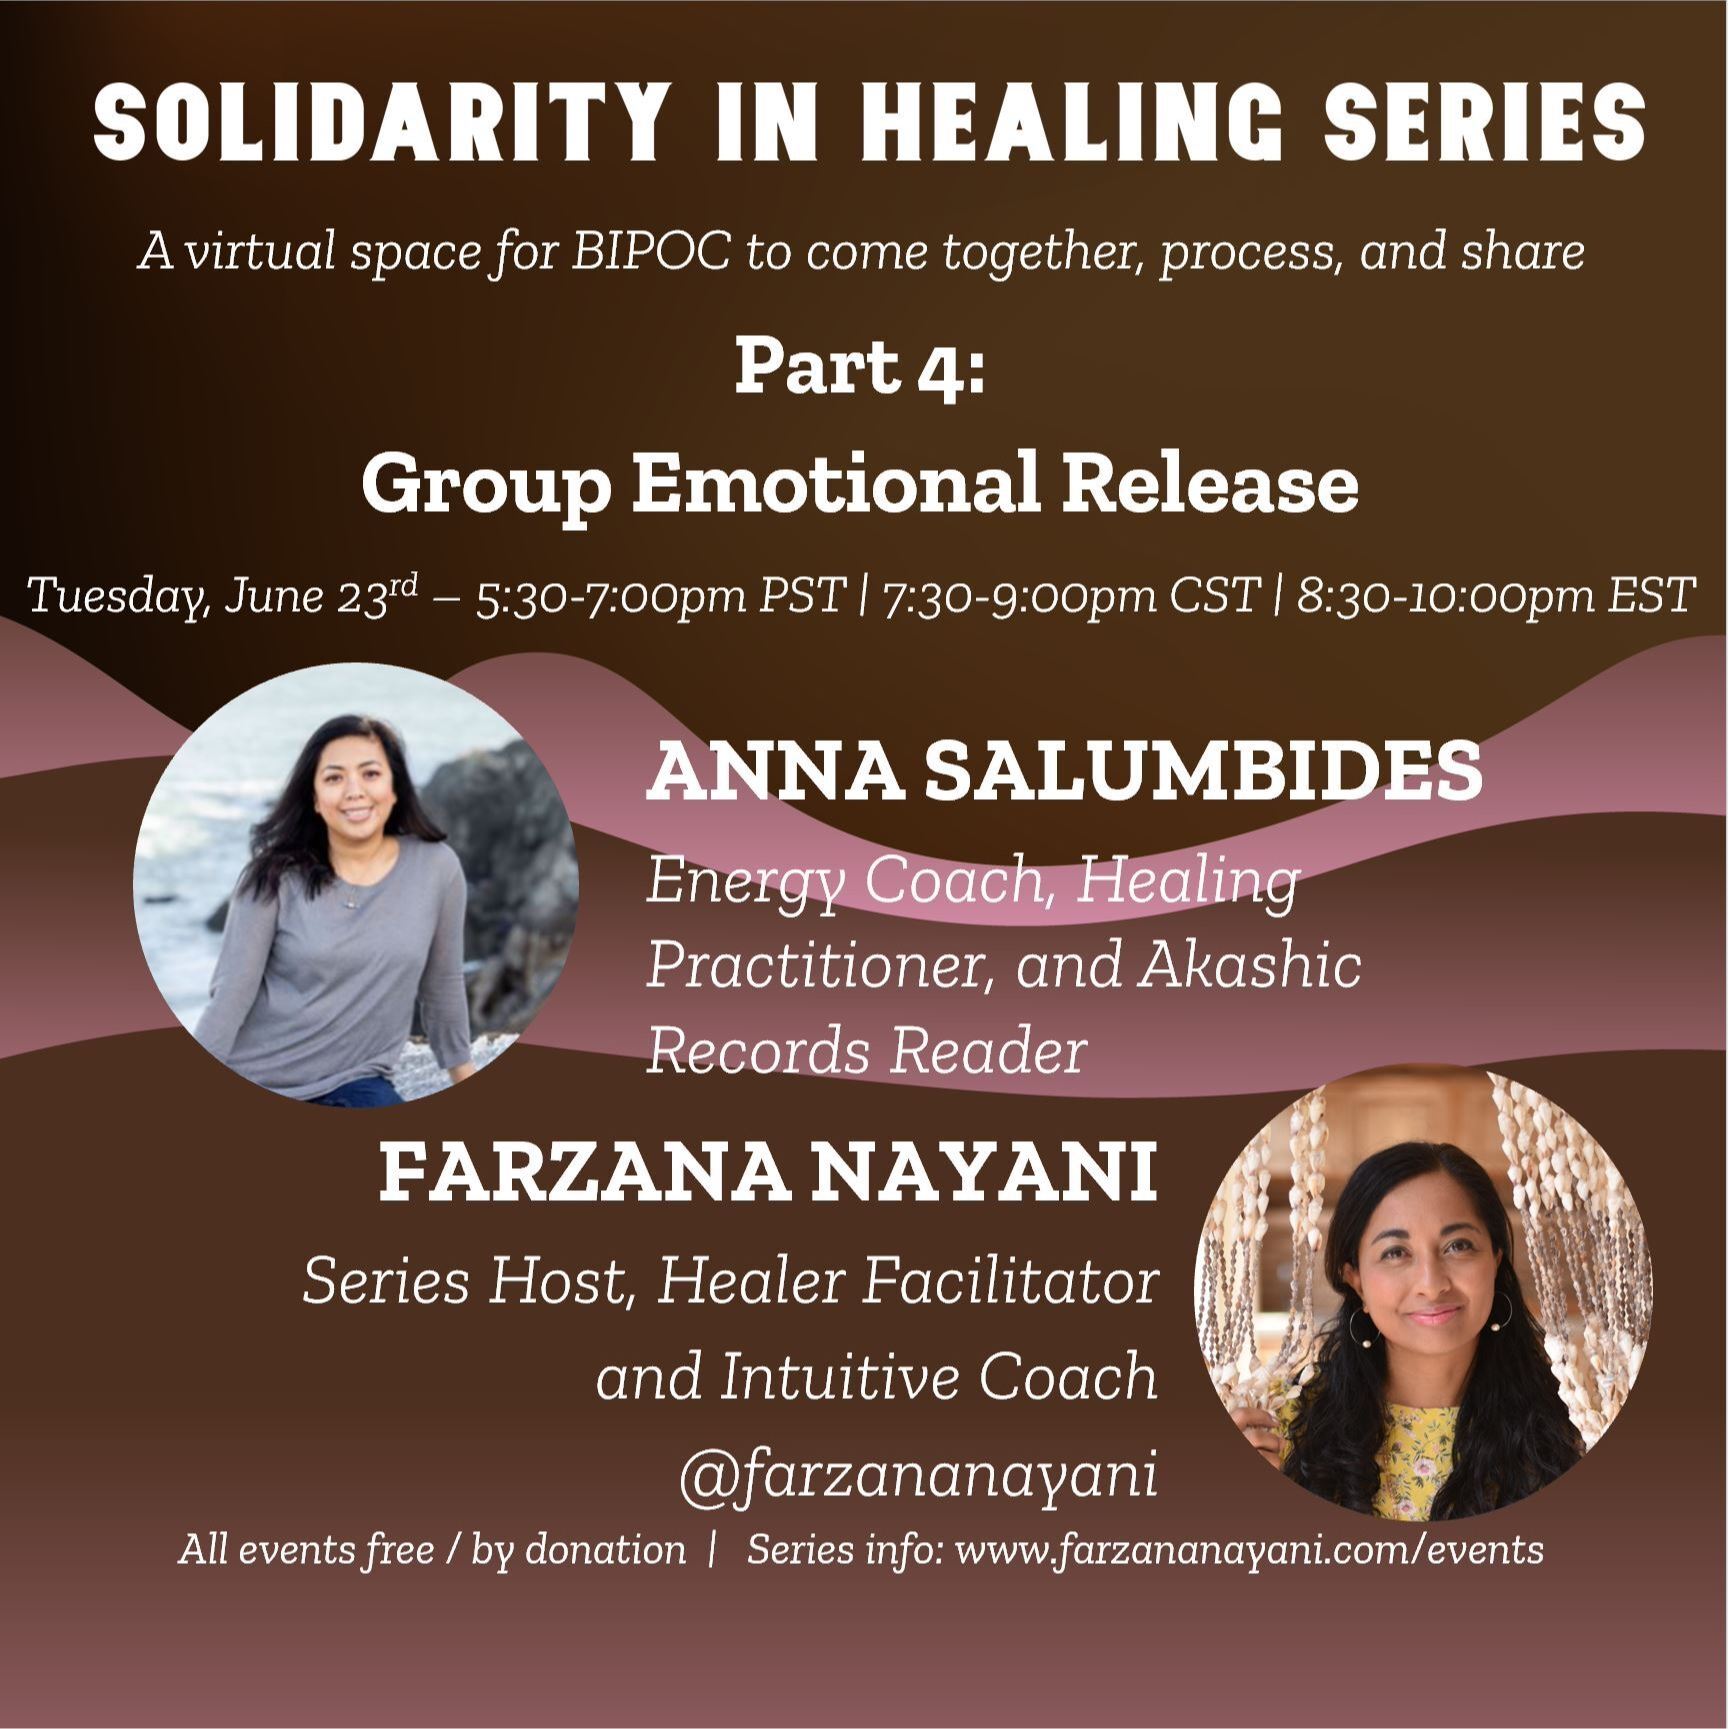 Group Emotional Release: Solidarity in Healing Series, Part 4